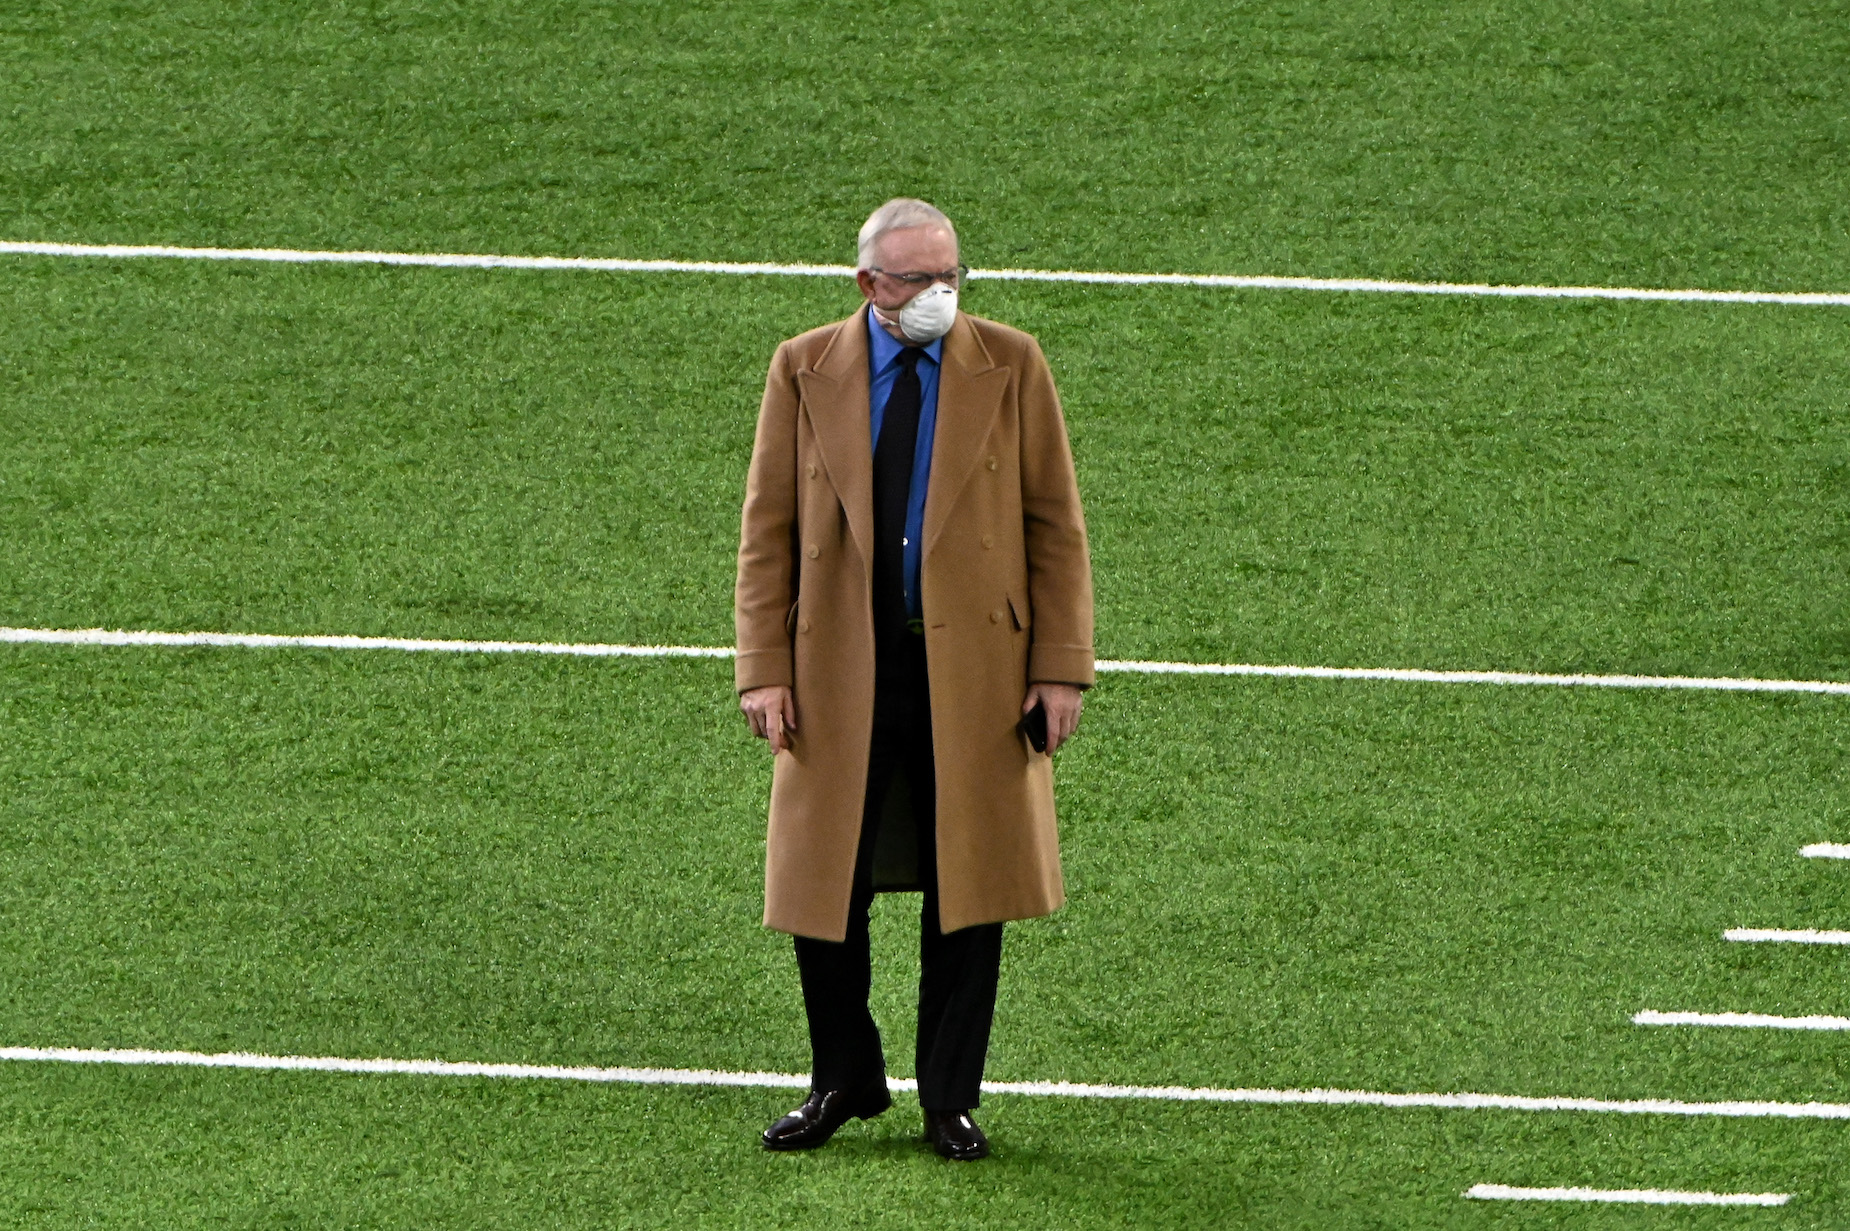 Dallas Cowboys owner Jerry Jones still believes that his team is must-see TV.